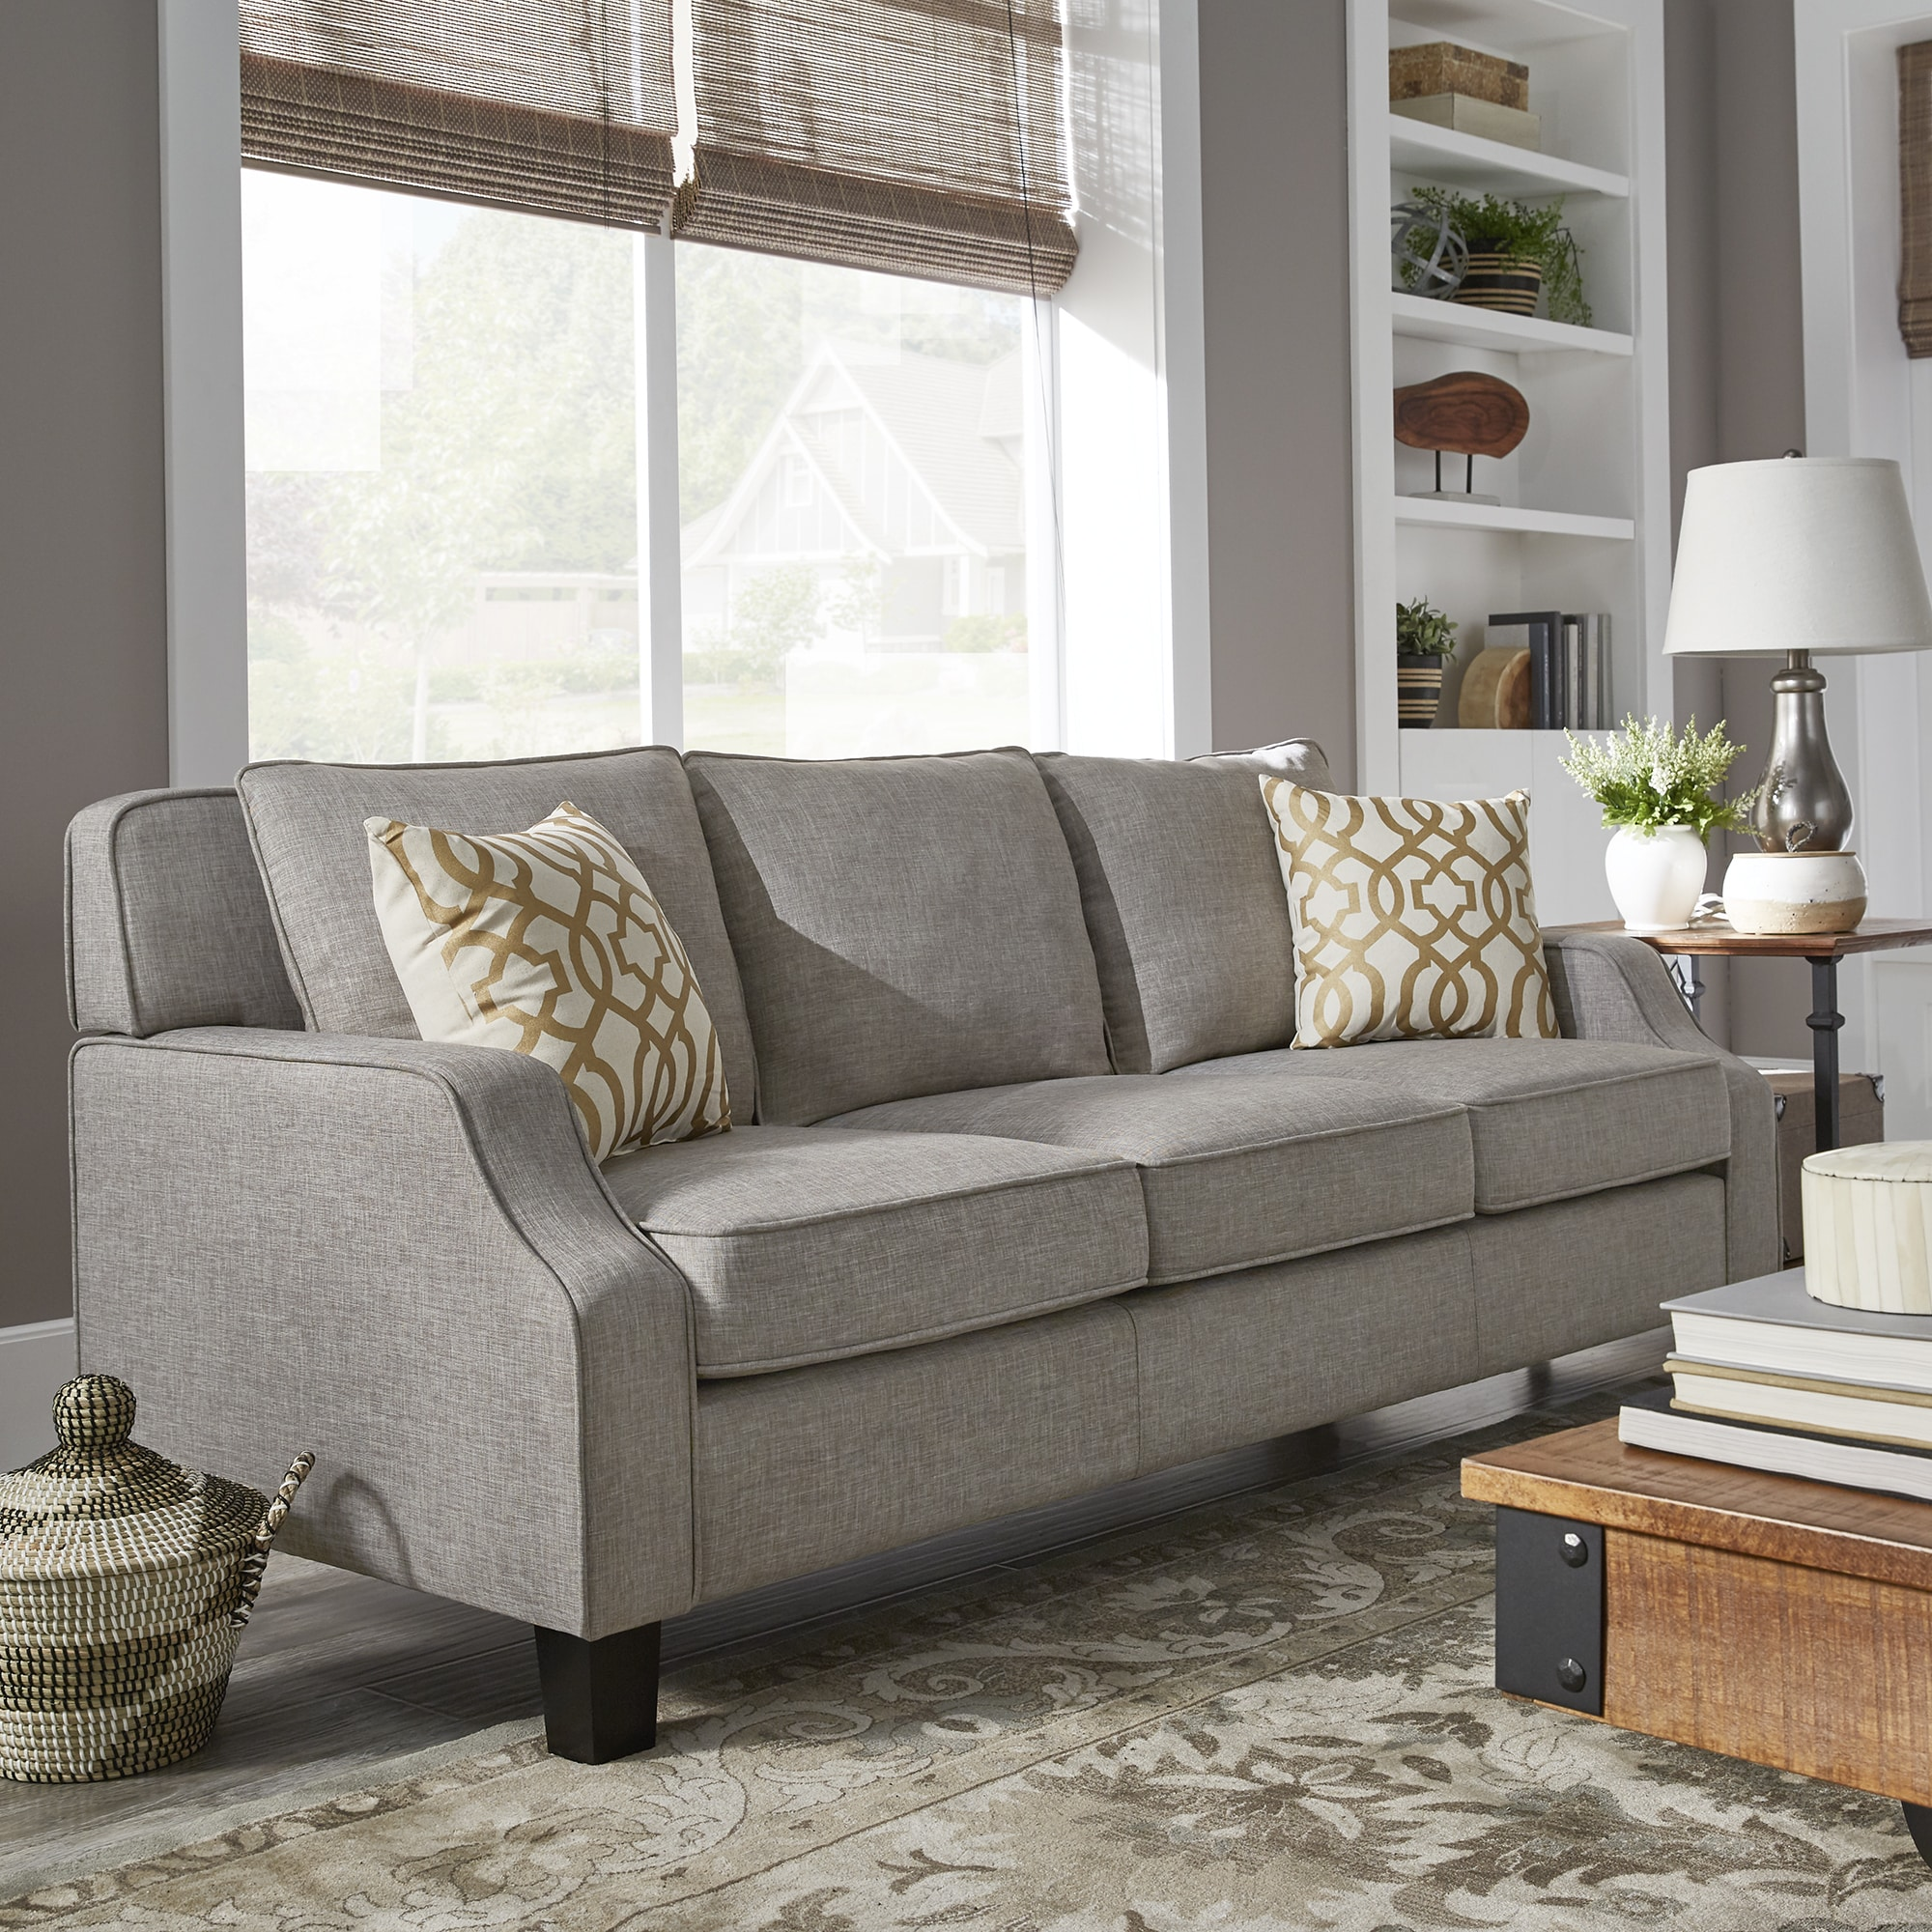 Parklee grey linen tailored track arm sofa and seating by inspire q classic